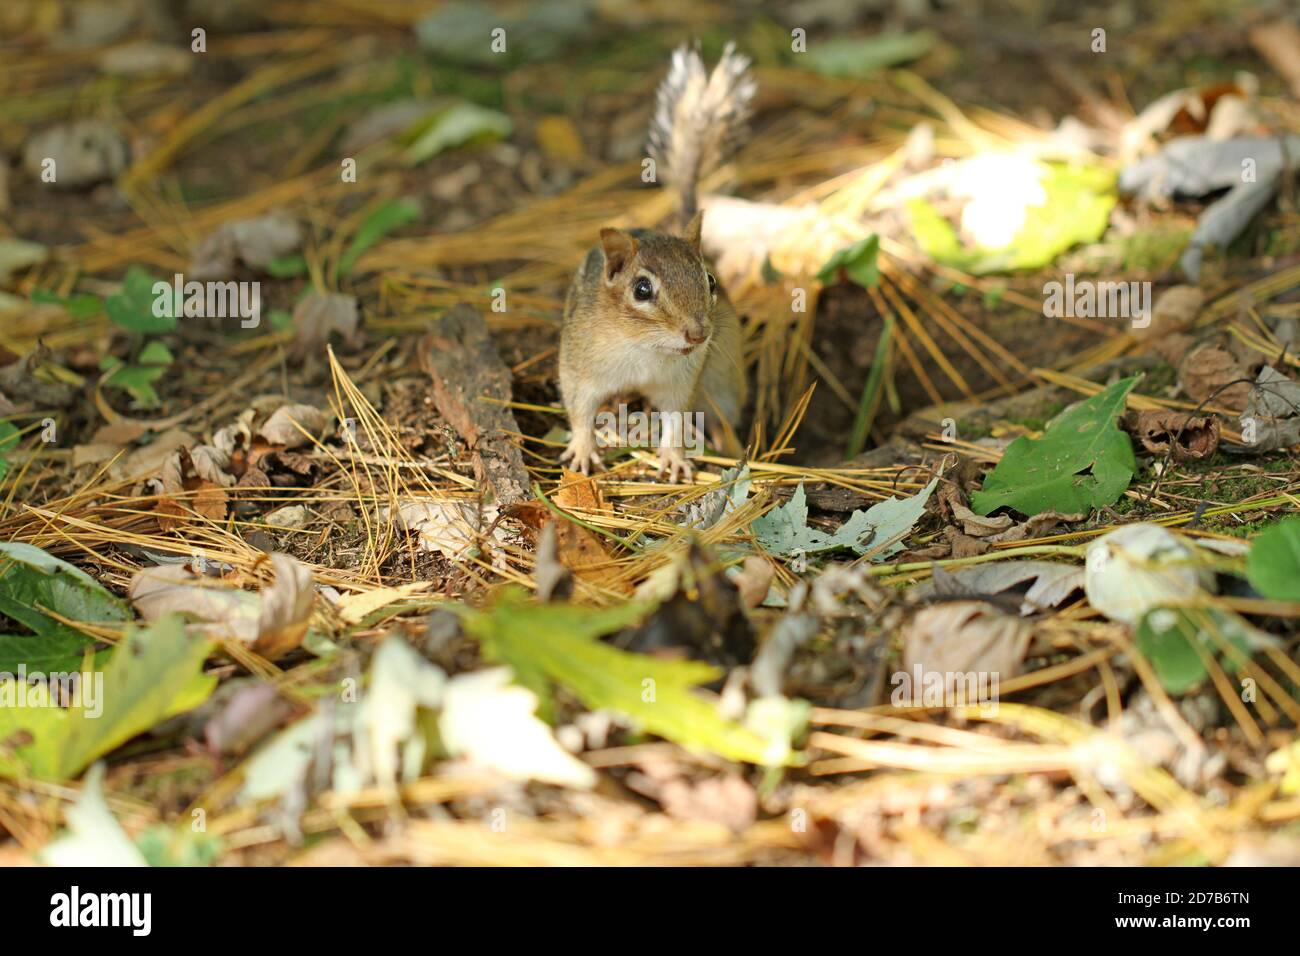 An Eastern chipmunk (Tamias striatus) emerging from its underground burrow in the ground Stock Photo